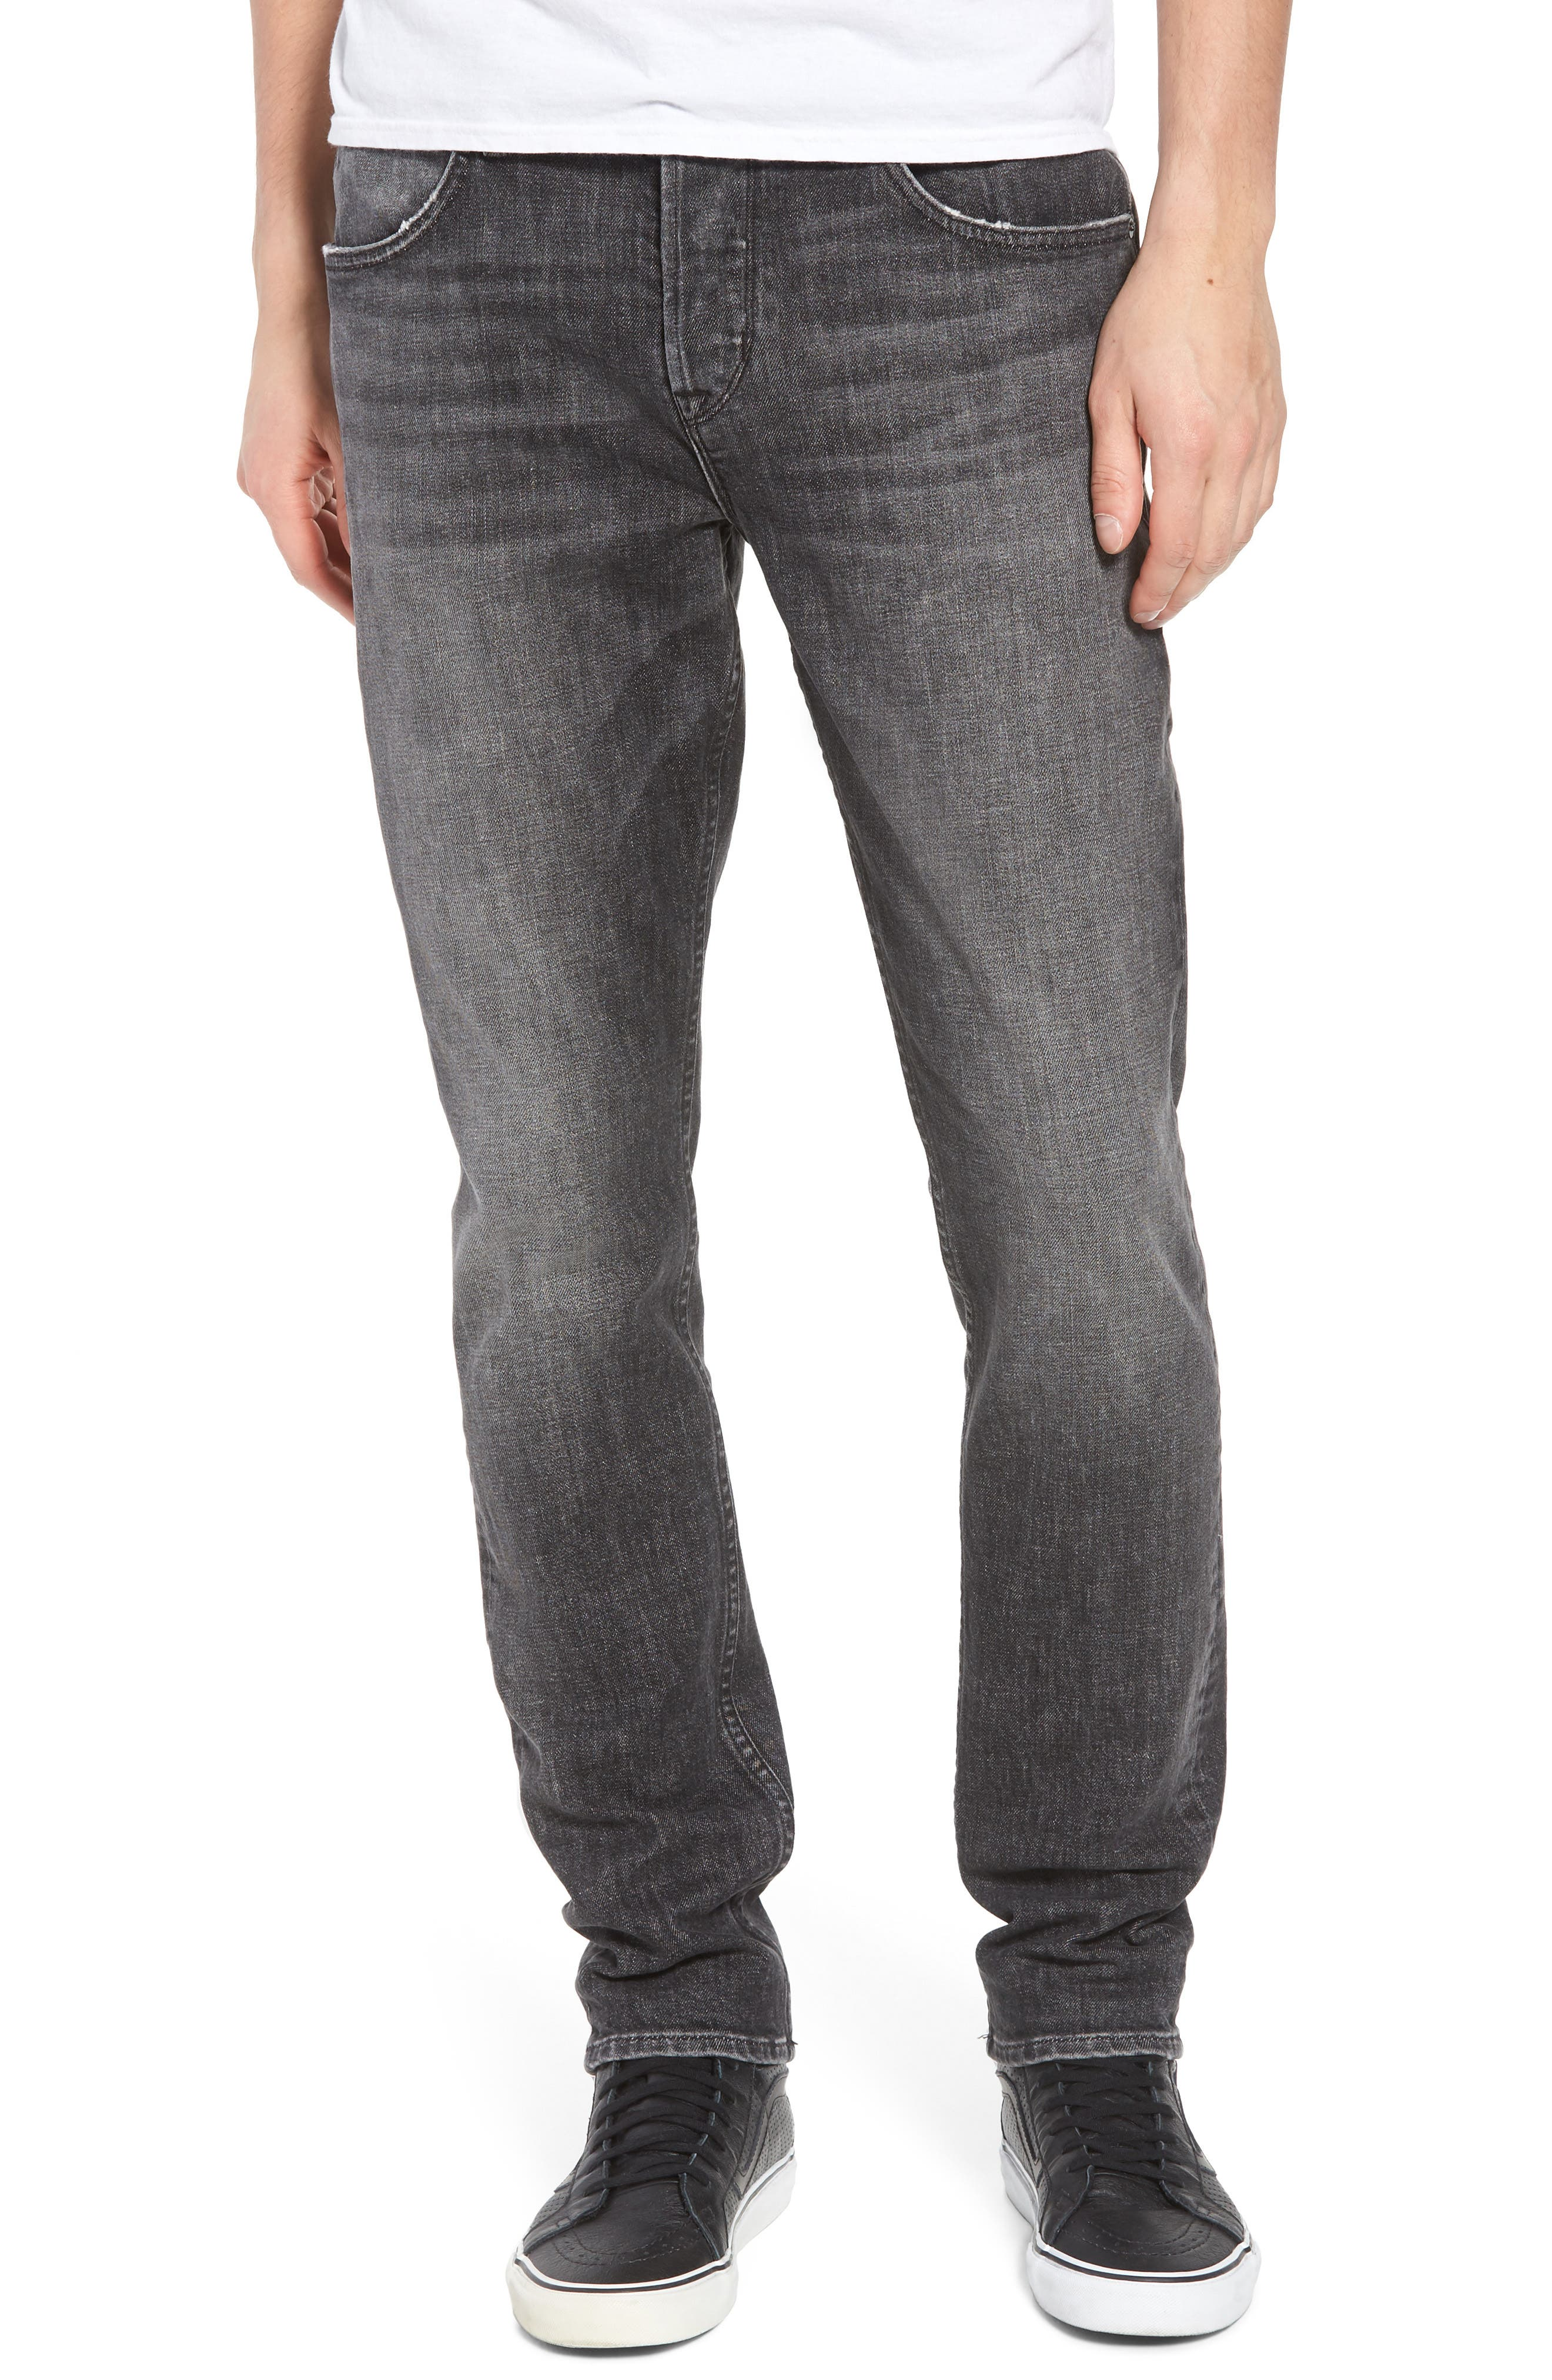 Axl Skinny Fit Jeans,                         Main,                         color, 001